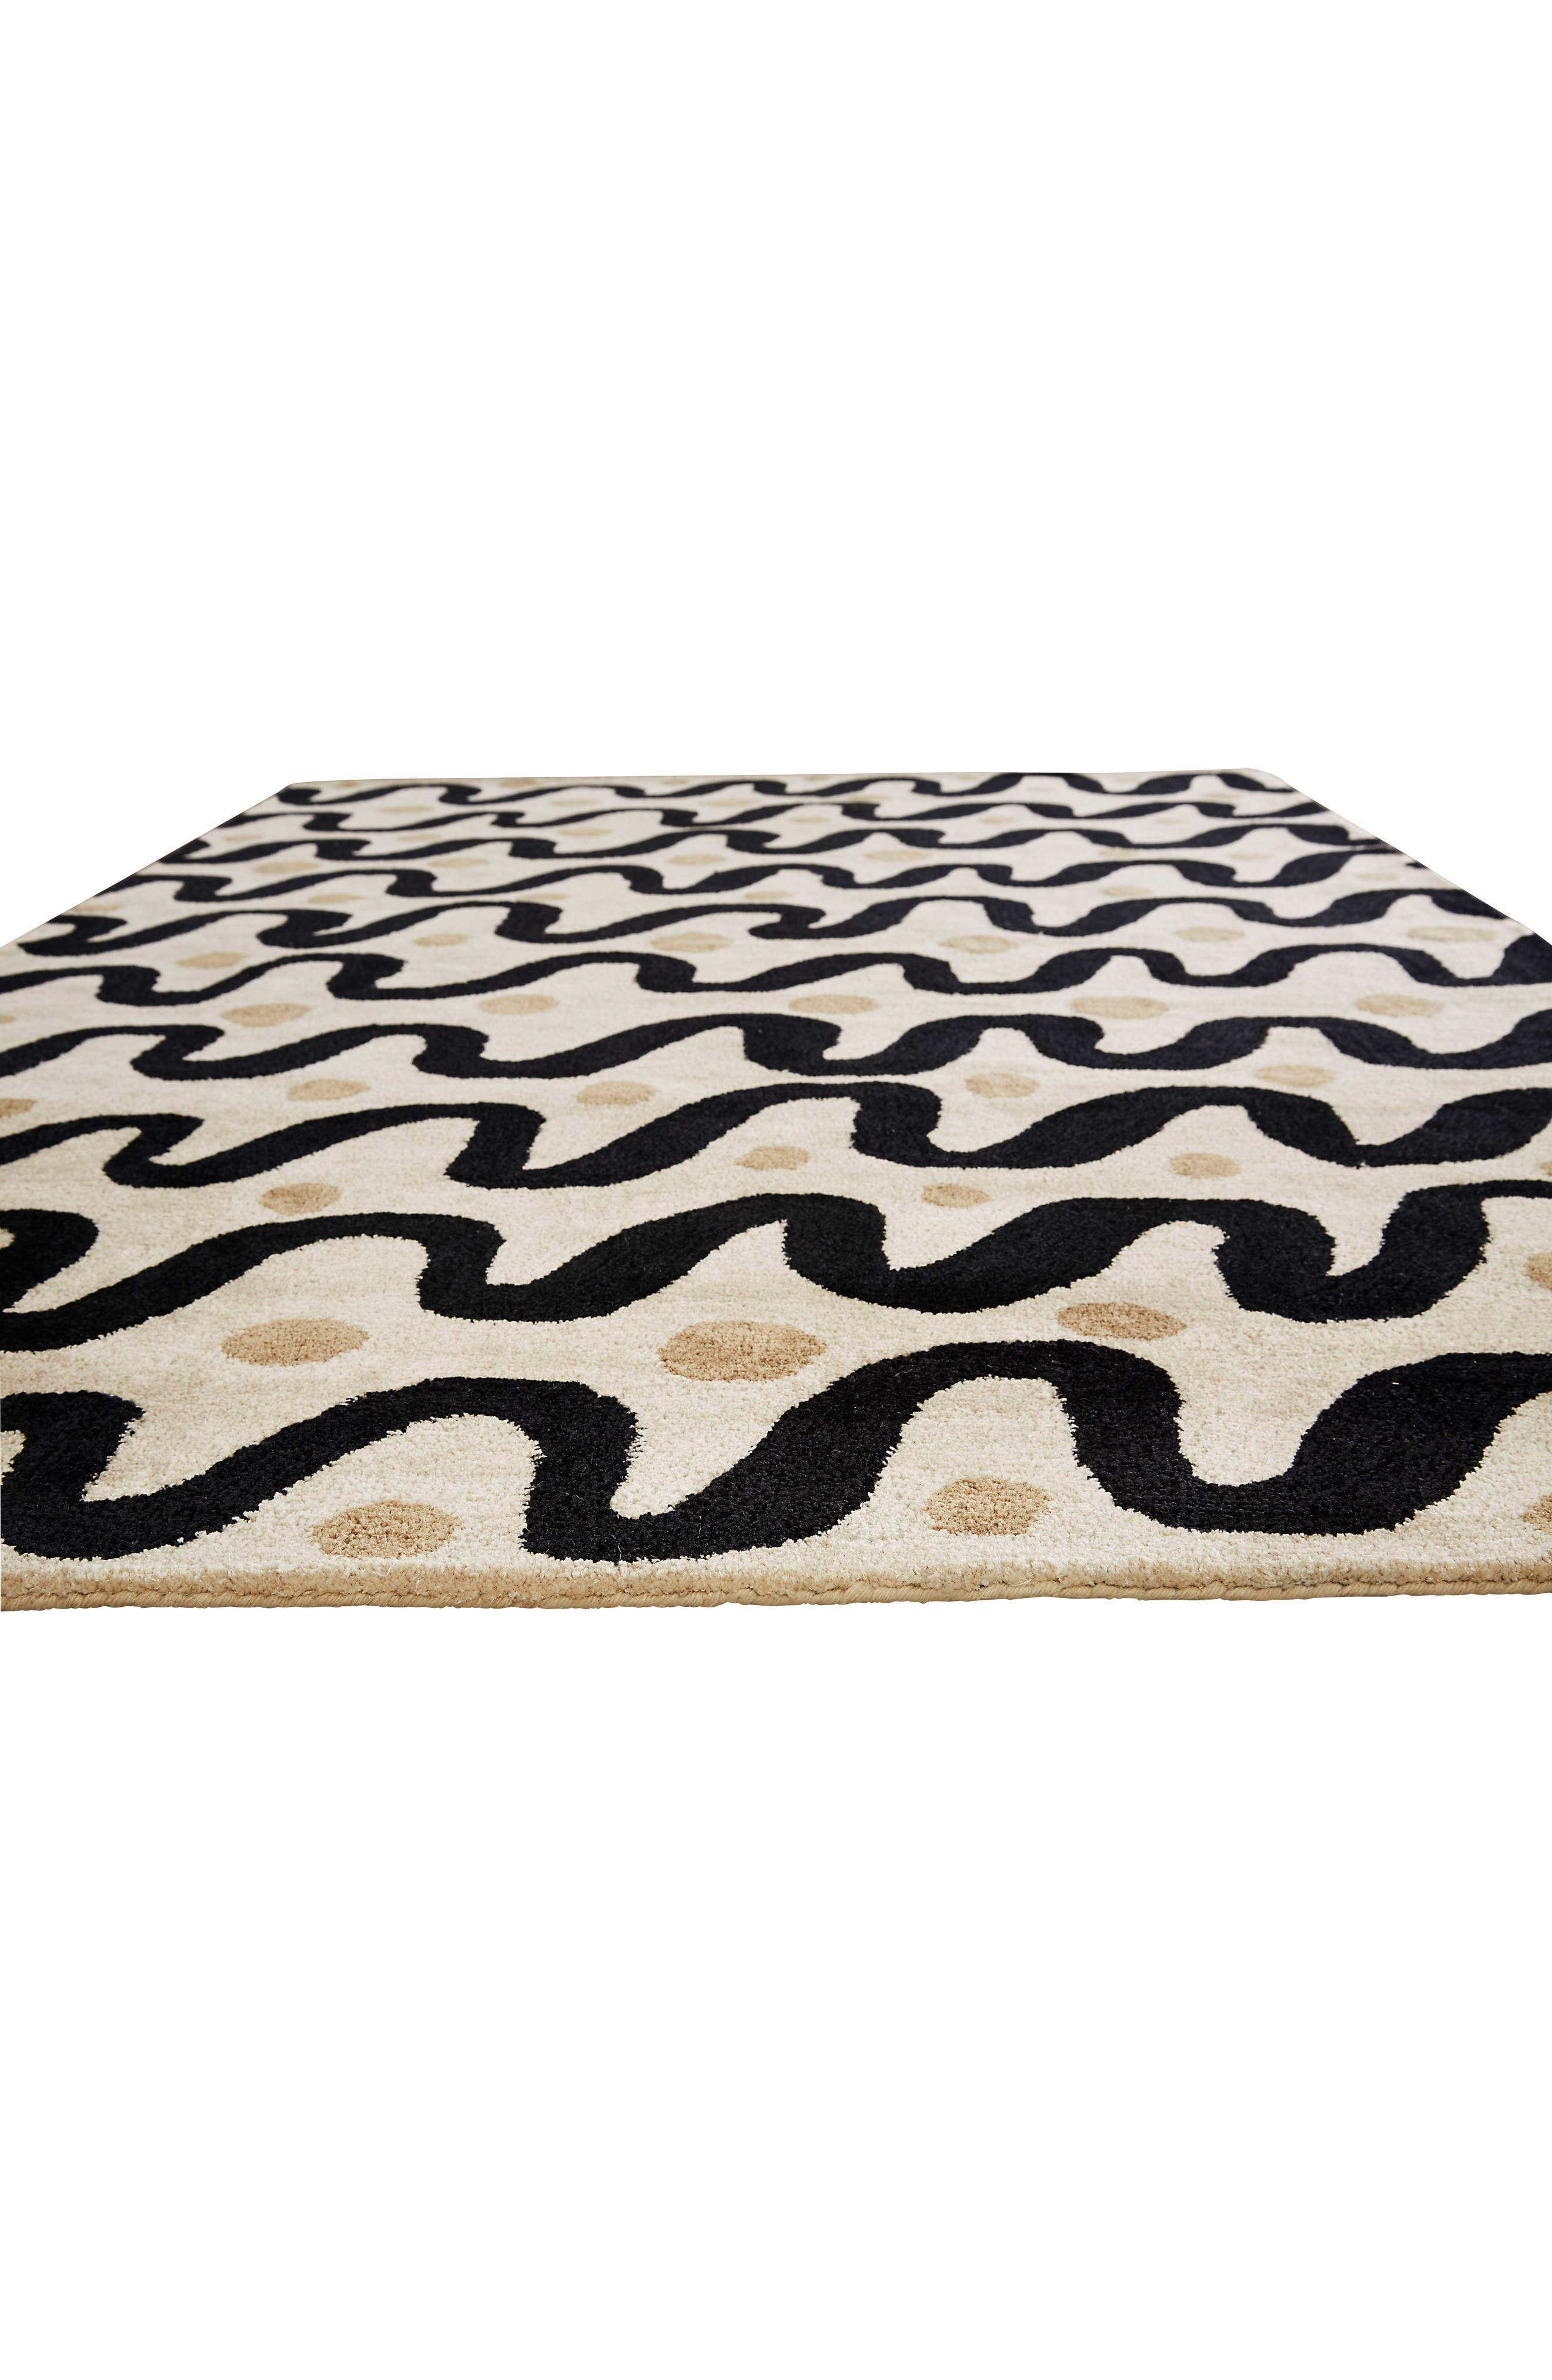 contemporary waves rug,                             Alternate thumbnail 4, color,                             250